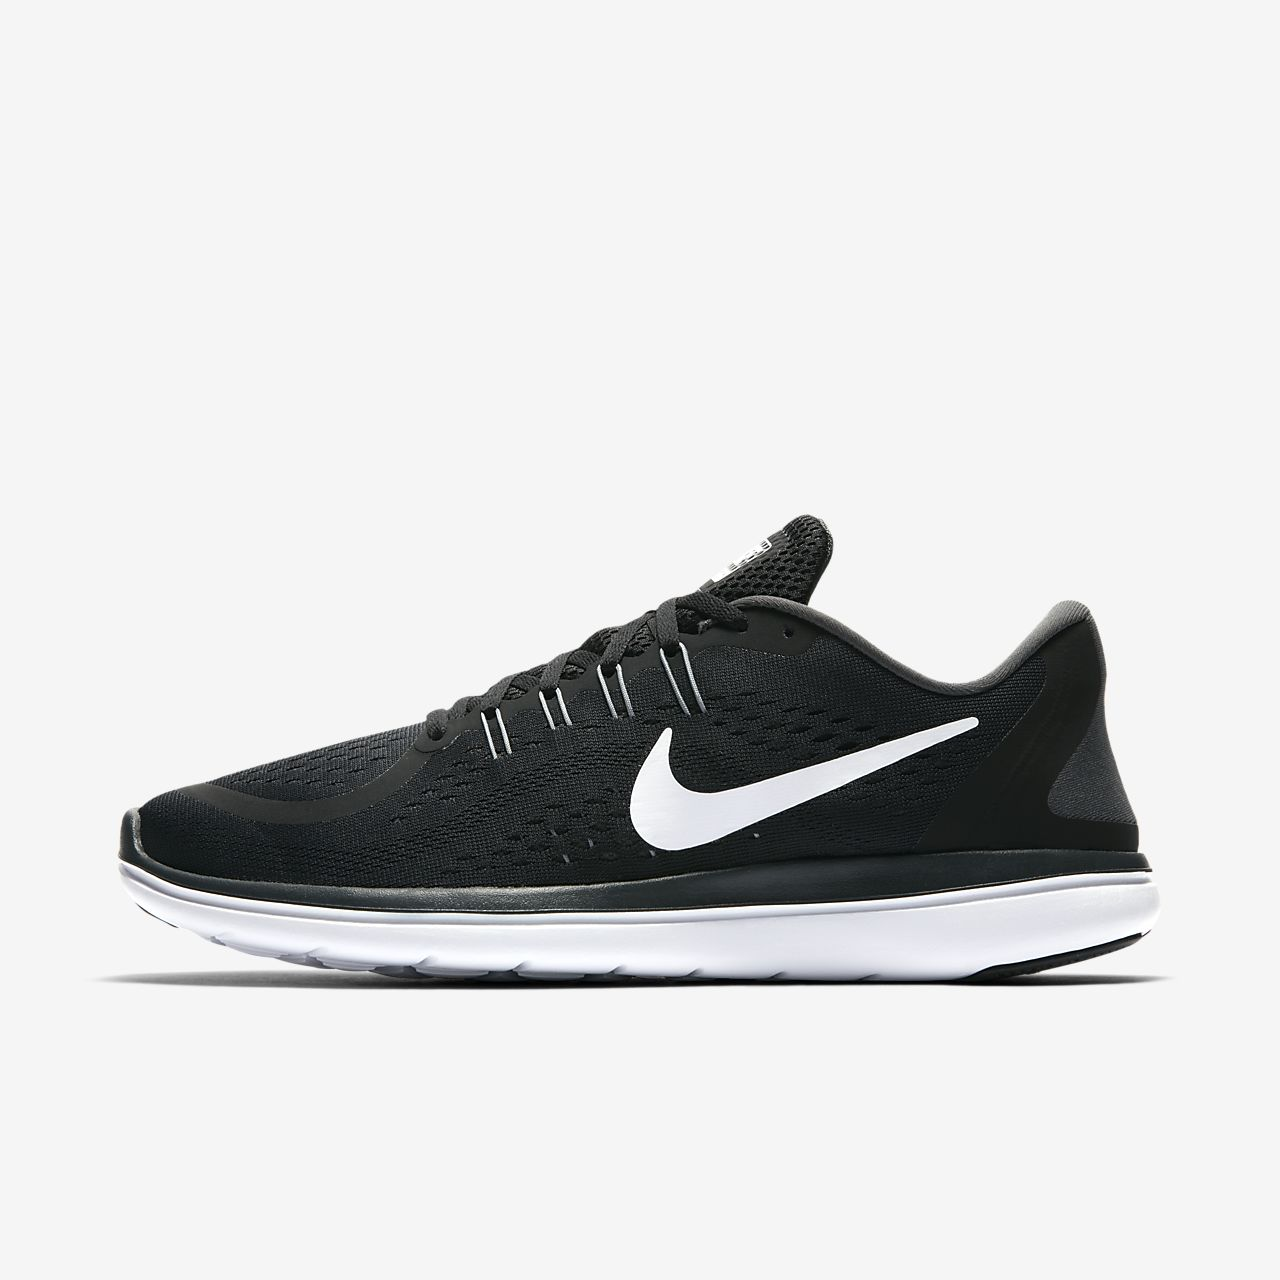 nike free runner men's nz